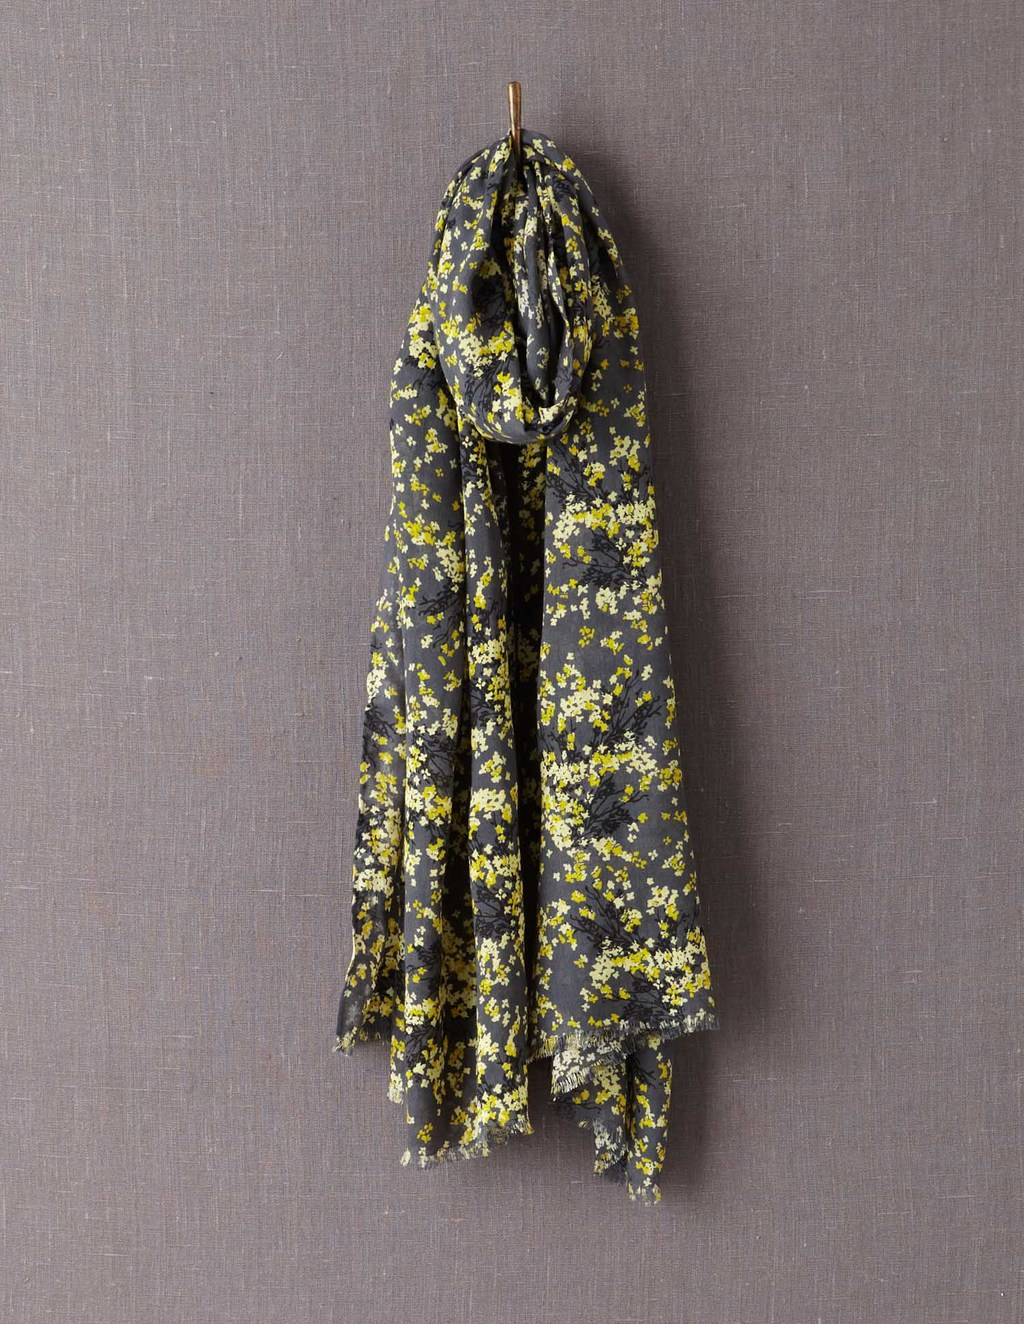 Printed Scarf - predominant colour: primrose yellow; secondary colour: charcoal; occasions: casual; type of pattern: heavy; style: regular; size: large; material: fabric; pattern: florals; season: a/w 2013